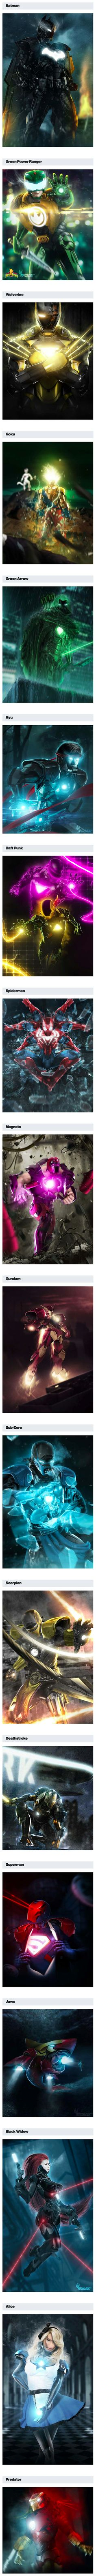 Ever wonder what Batman would look like as Iron Man? Here are 18 awesome Iron Man mashups for your viewing enjoyment.